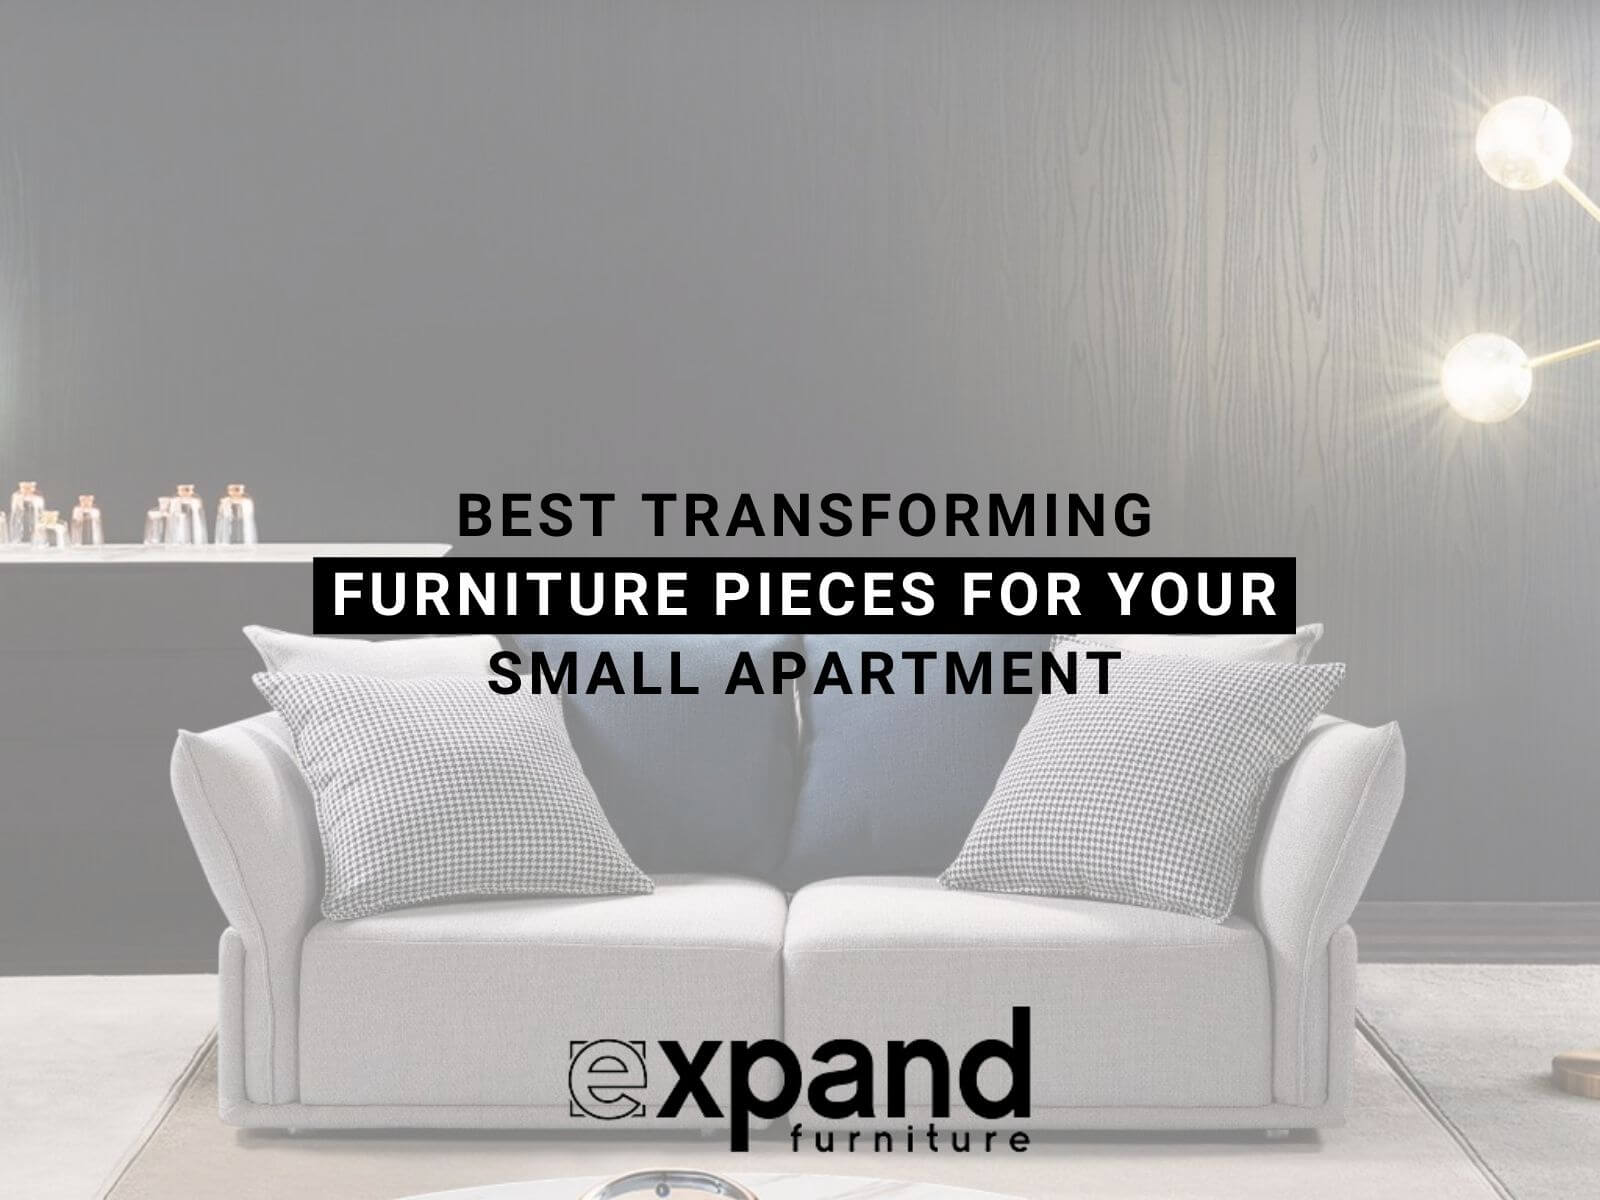 Best Transforming Furniture Pieces for Your Small Apartment